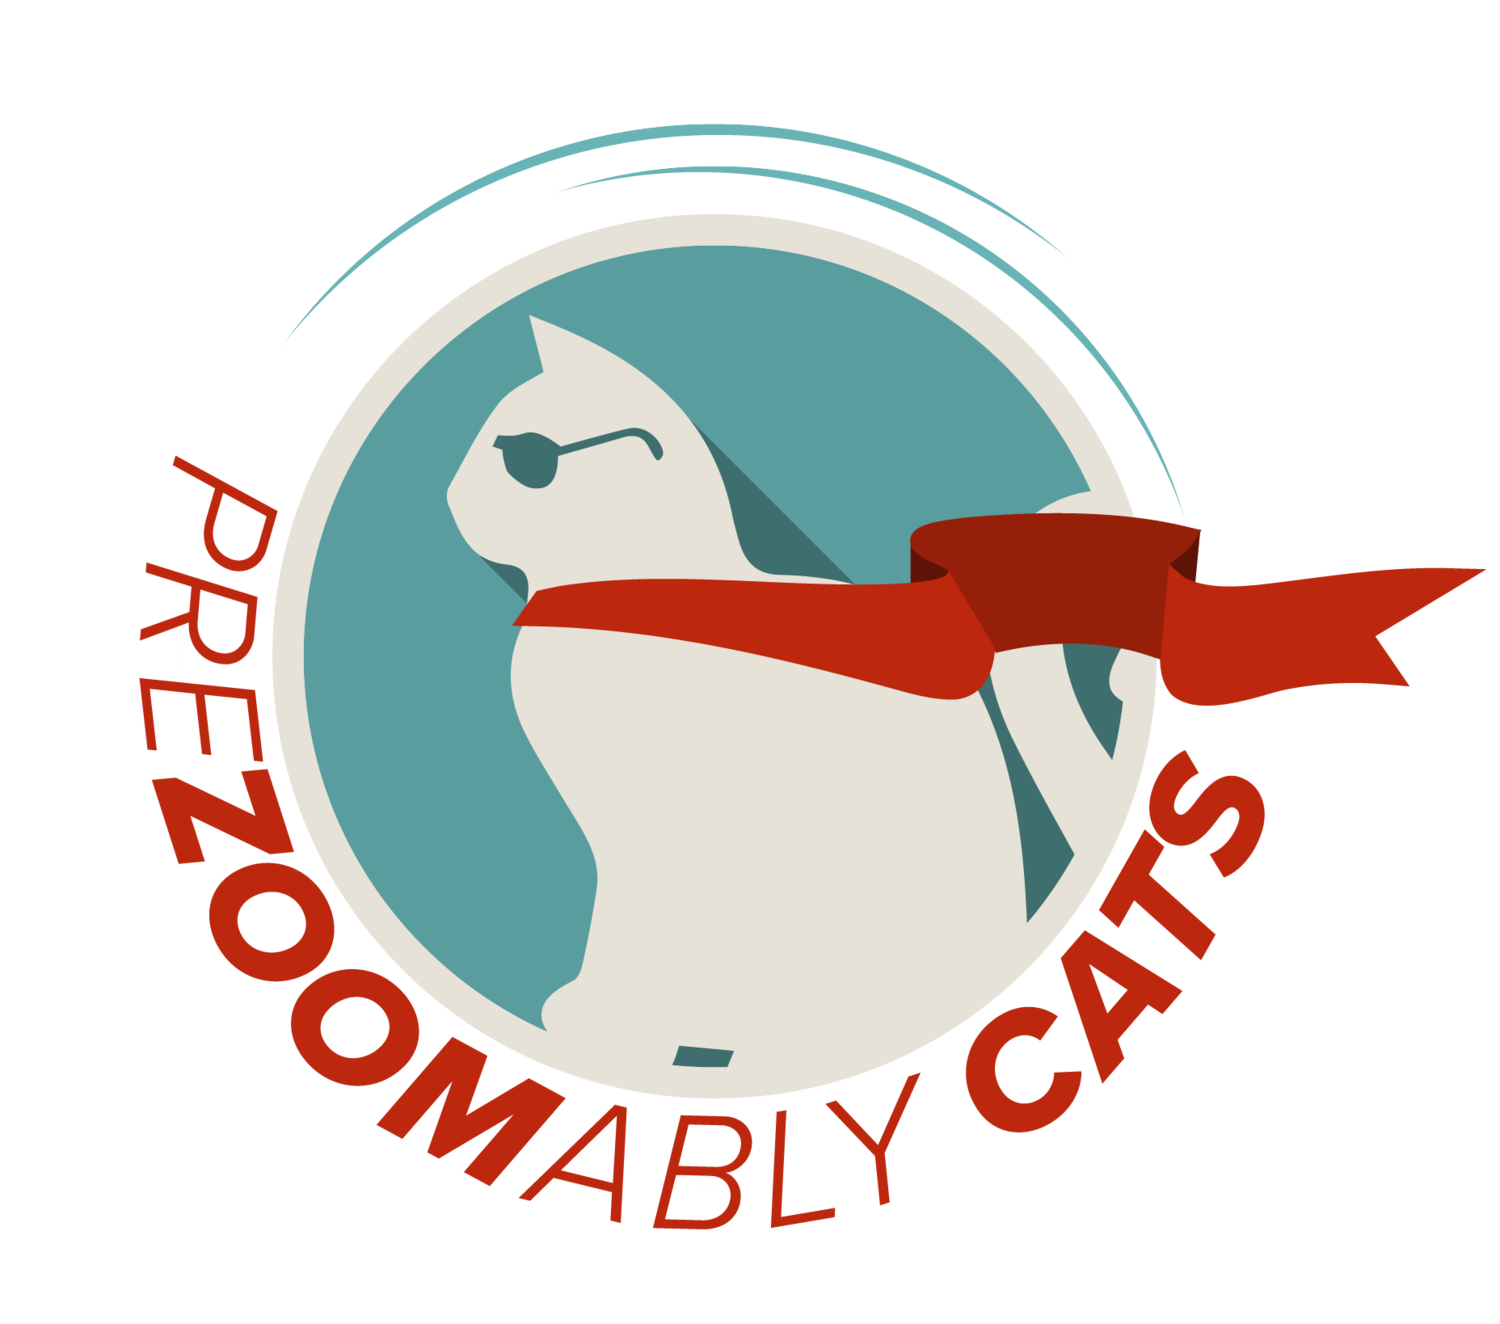 National cat day clipart image free download Prezoomably Cats image free download